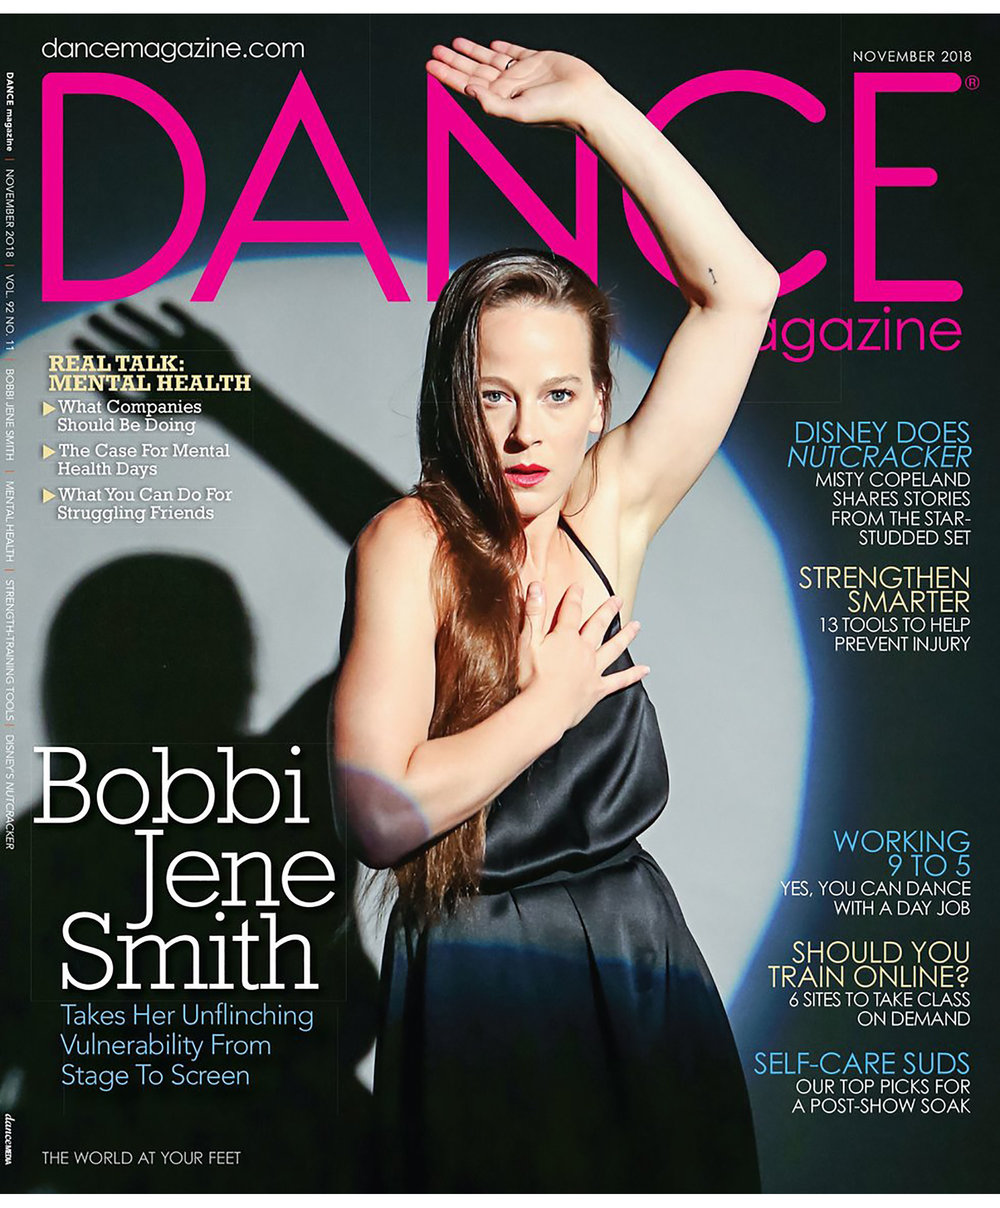 Bobbi Jene Smith on the cover of November's Dance Magazine.